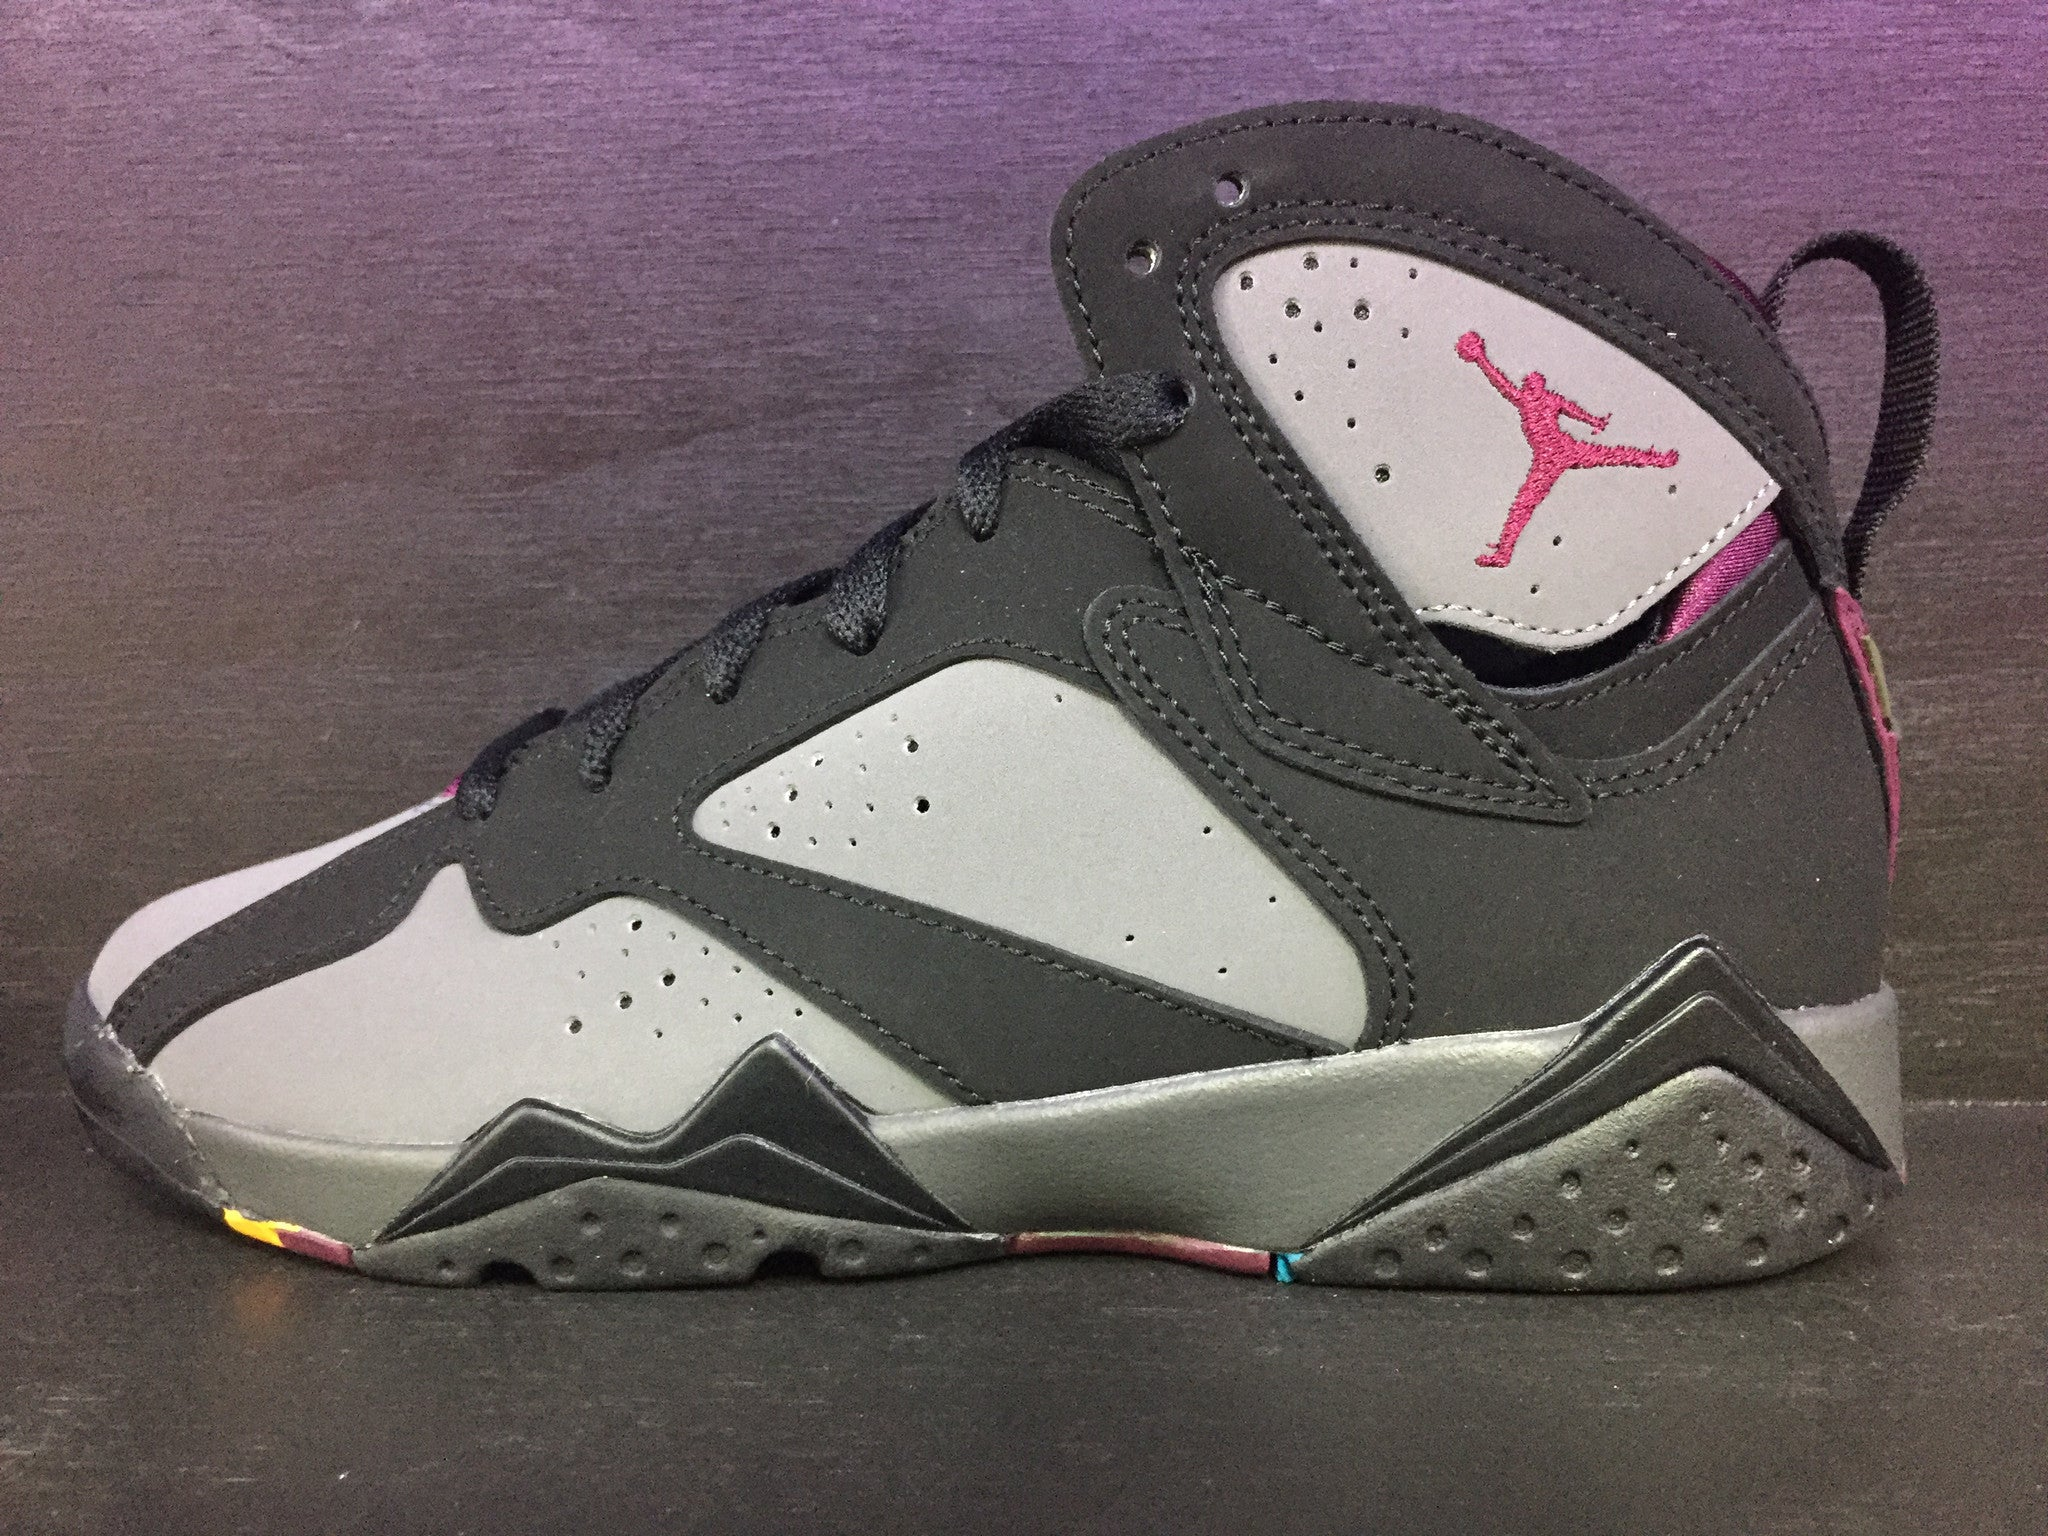 Air Jordan 7 Retro 'Bordeaux' Grade School